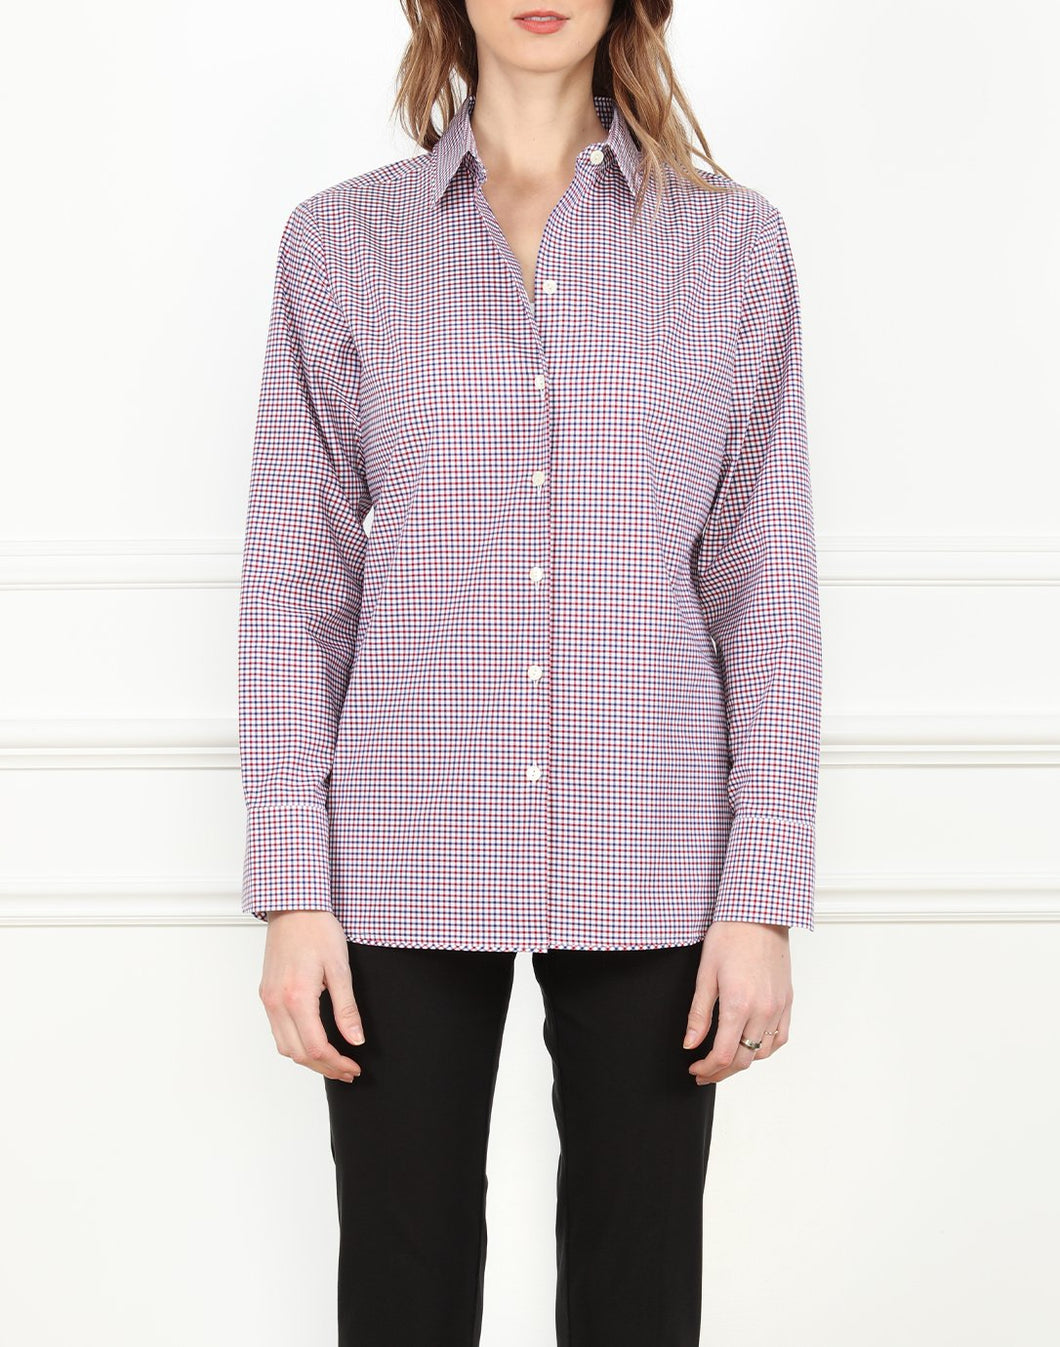 Margot Long Sleeve Relax Fit Shirt In Red/White/Blue Check